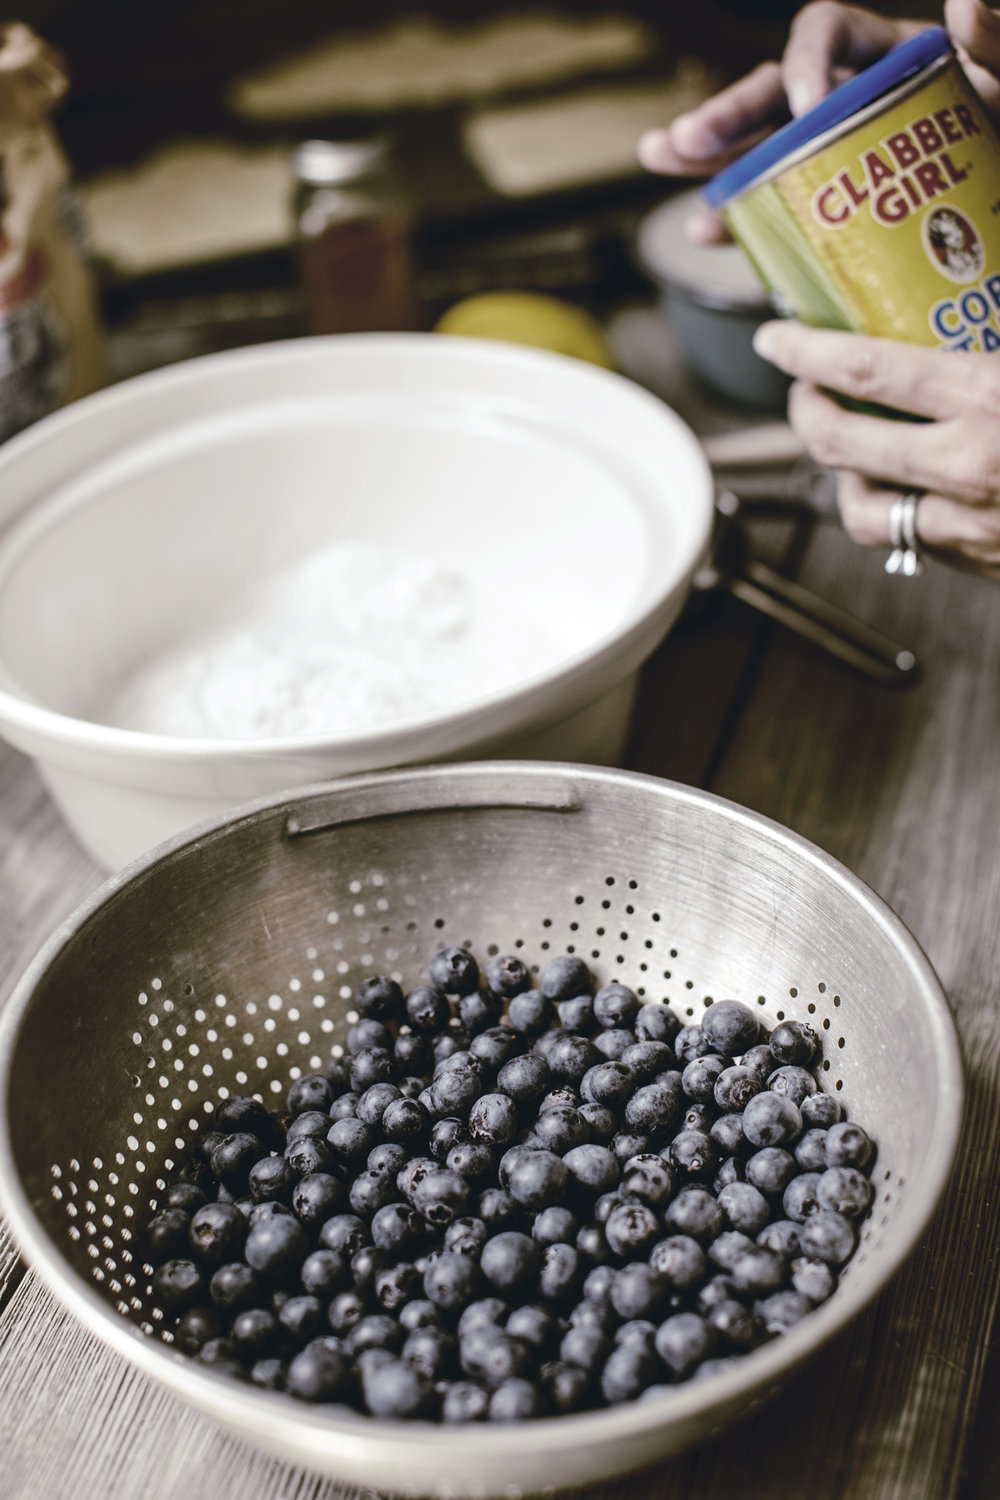 clabber girl baking powder to coat blueberries / rustic blueberry galette recipe / heirloomed